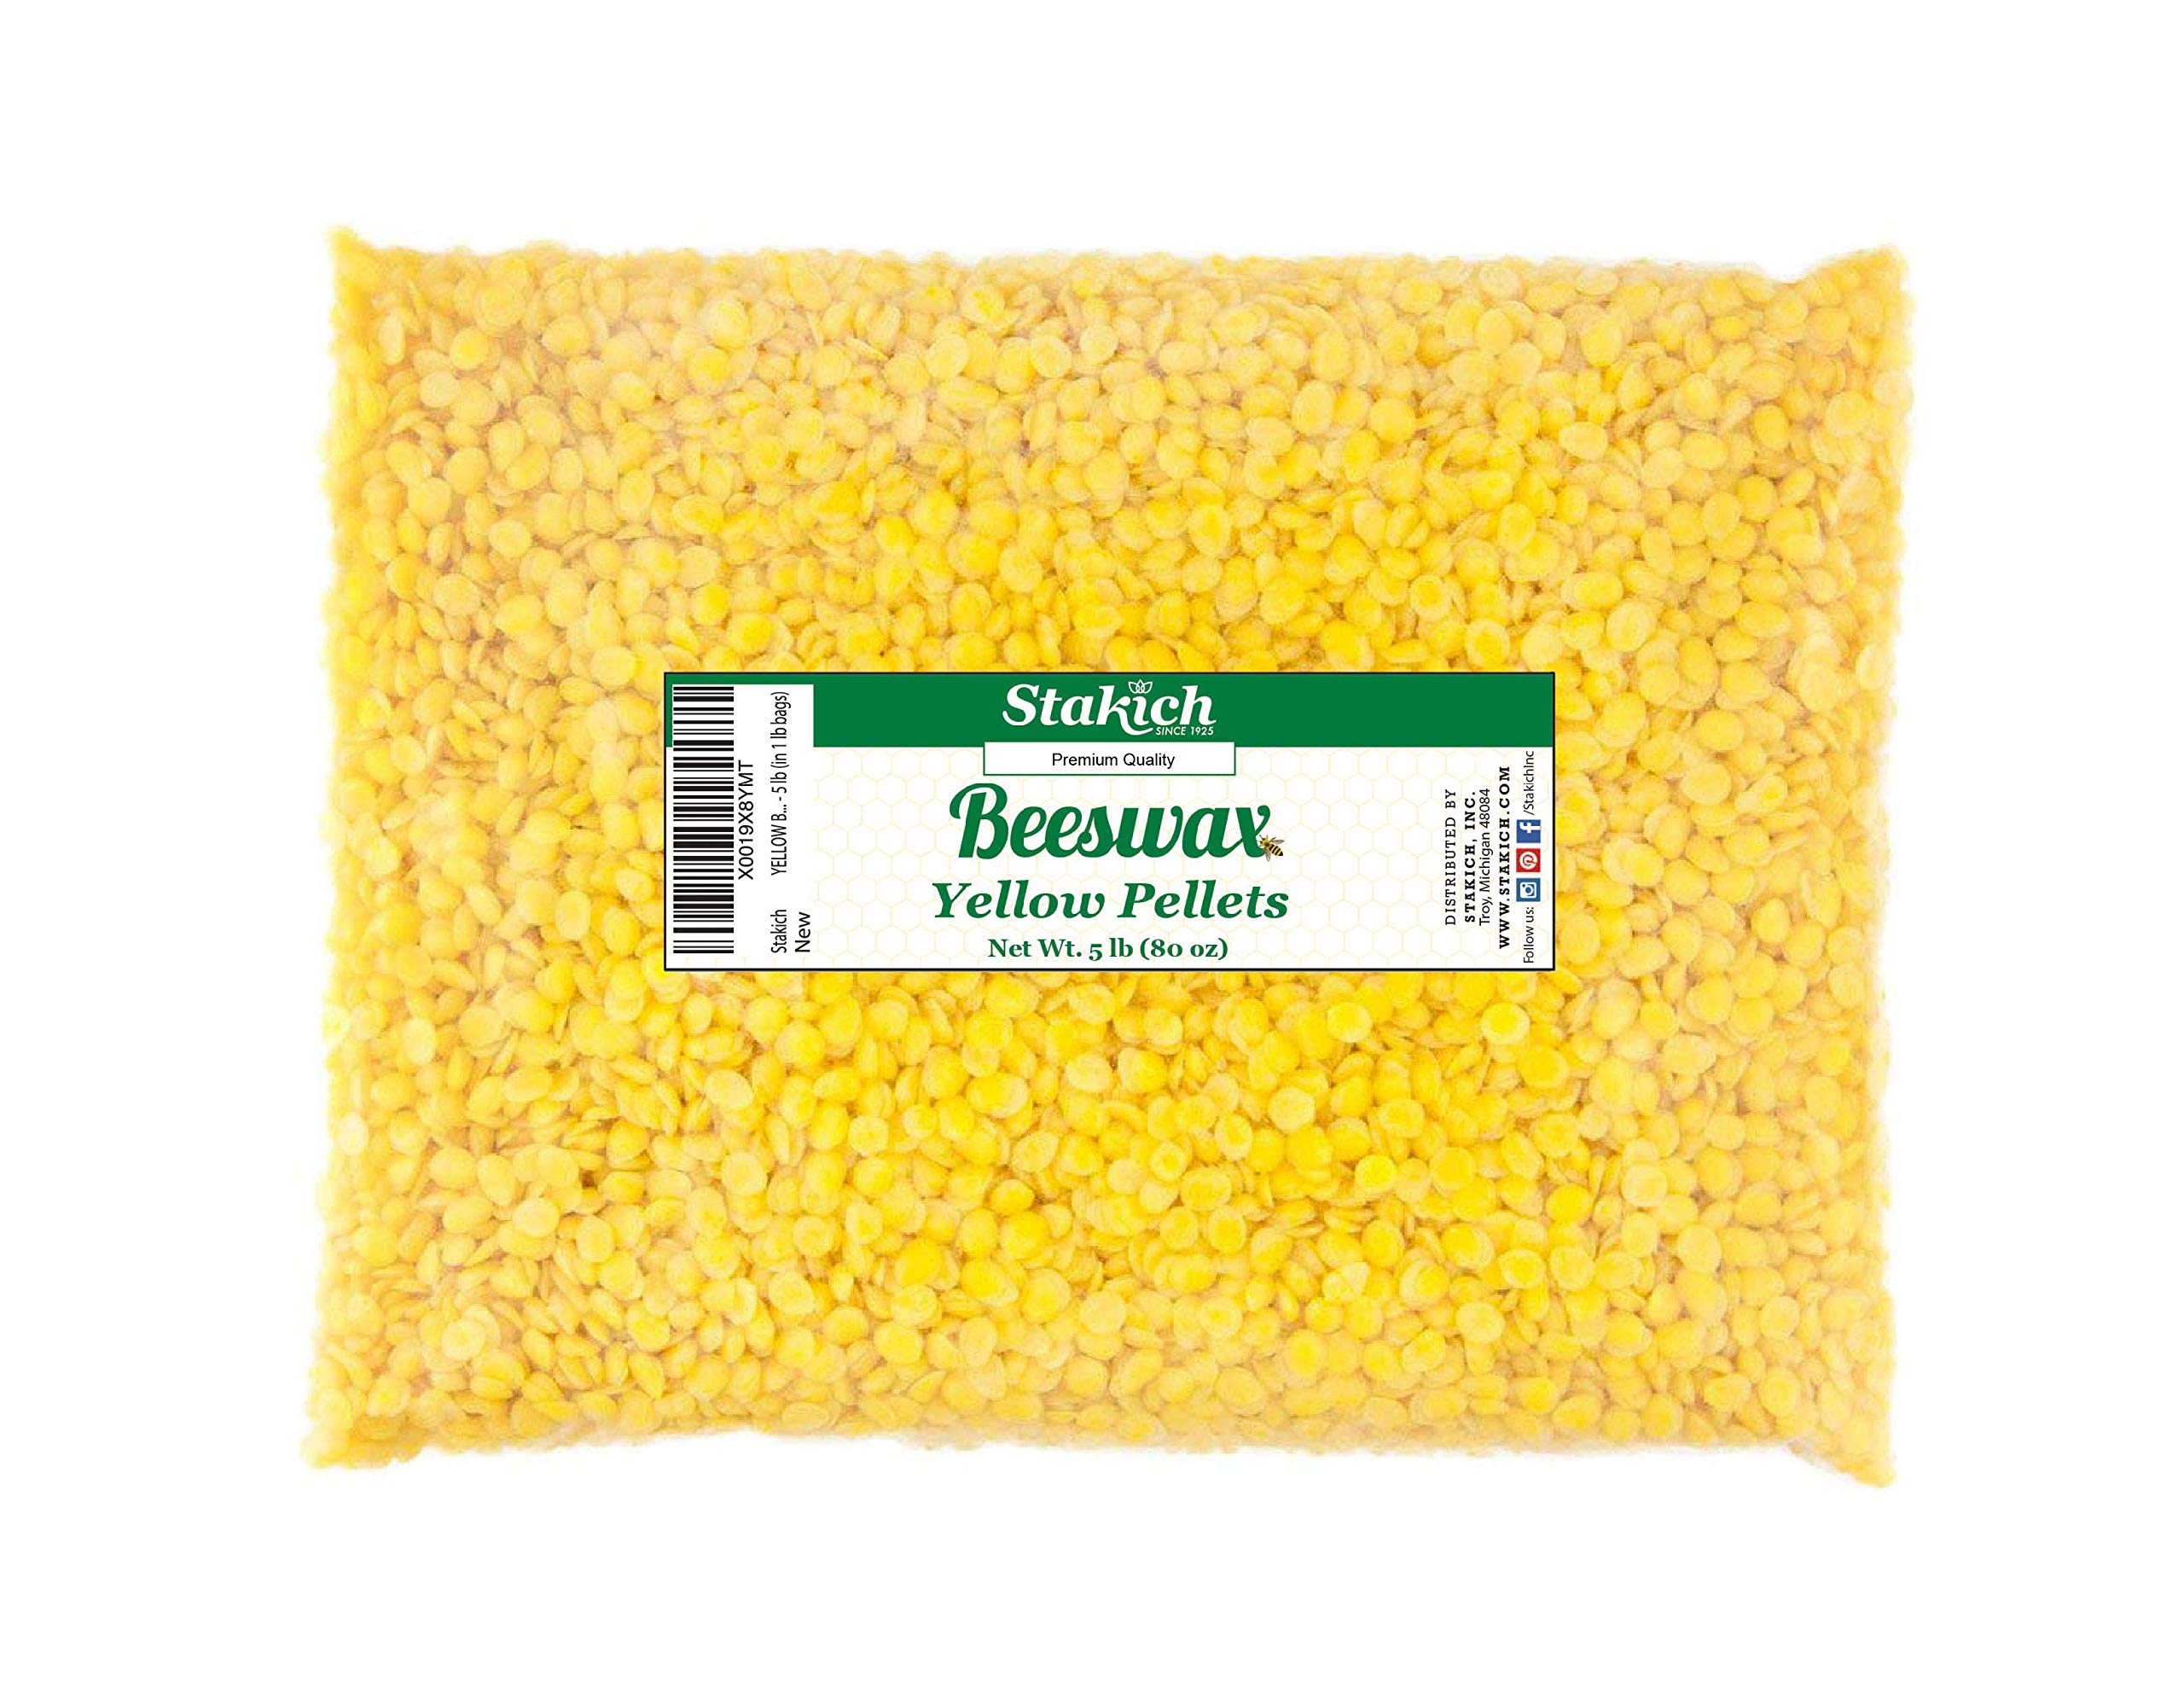 Stakich Yellow Beeswax Pellets - Natural, Cosmetic Grade - 5 Pound (in 1 Pound Bags)